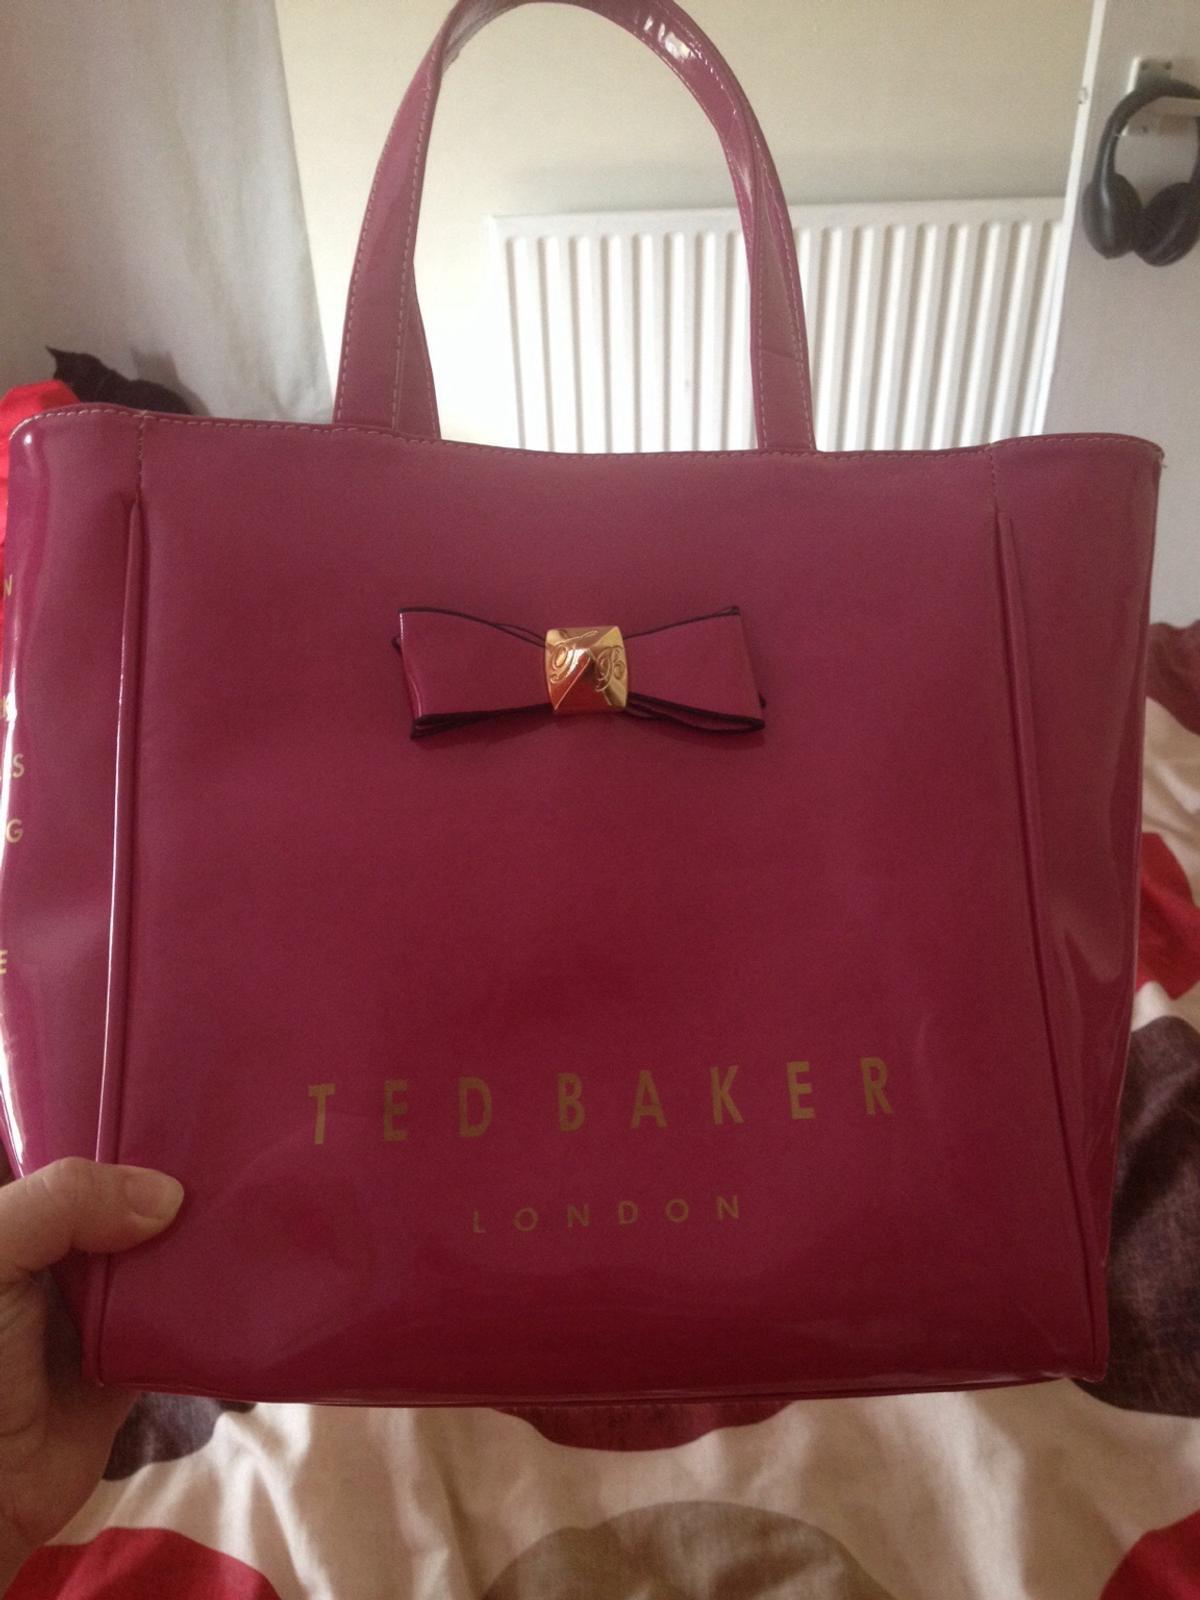 fb83f4b12e fake ted baker bag in Page Bank for £5.00 for sale - Shpock